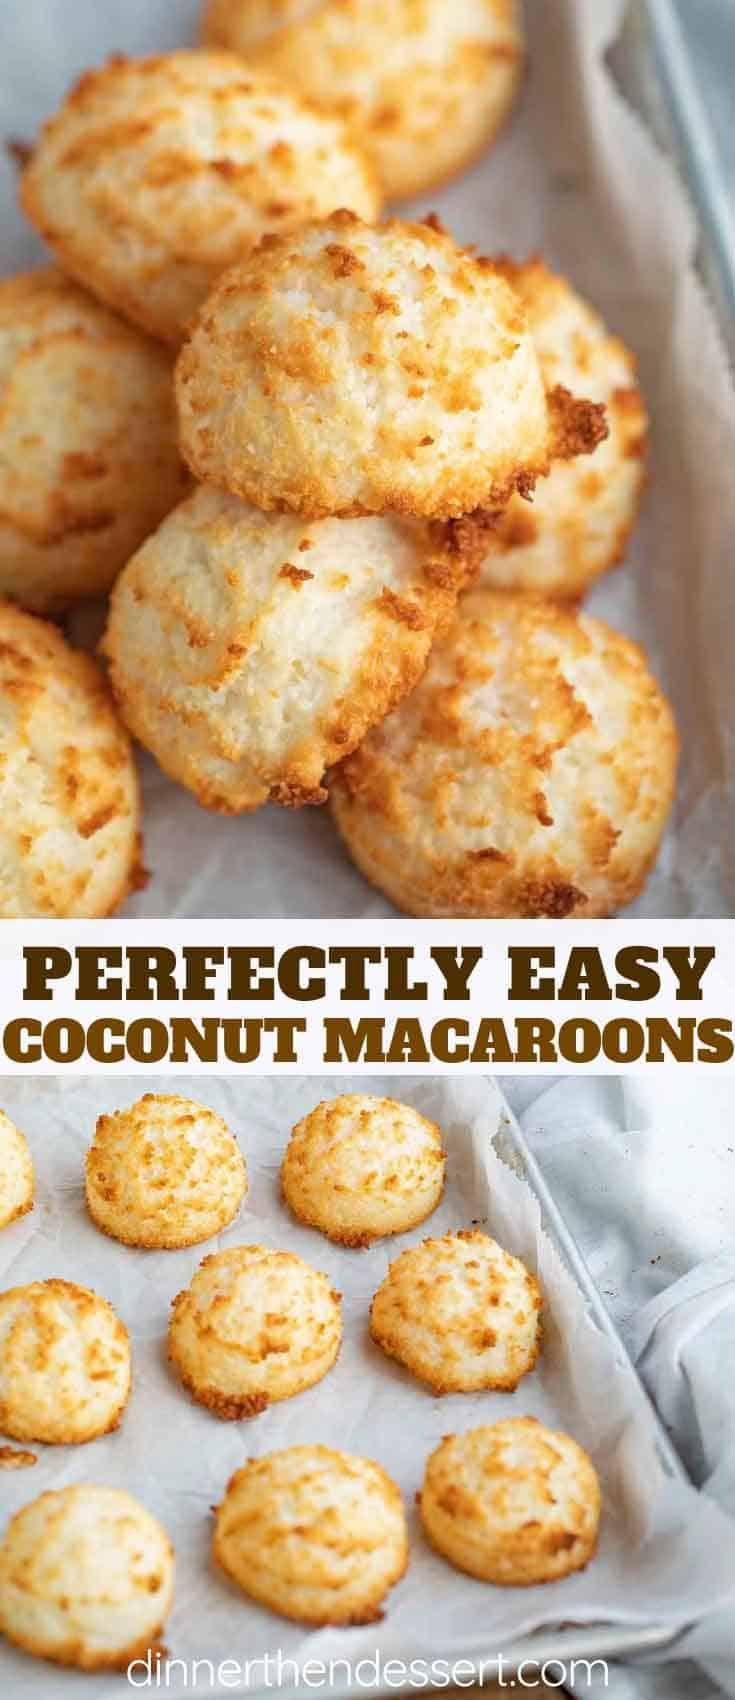 Coconut Macaroons Are Sweet And Chewy Made From Coconut Flakes Sweetened Condensed Milk Alm Coconut Macaroons Recipe Coconut Macaroons Easy Macaroon Recipes